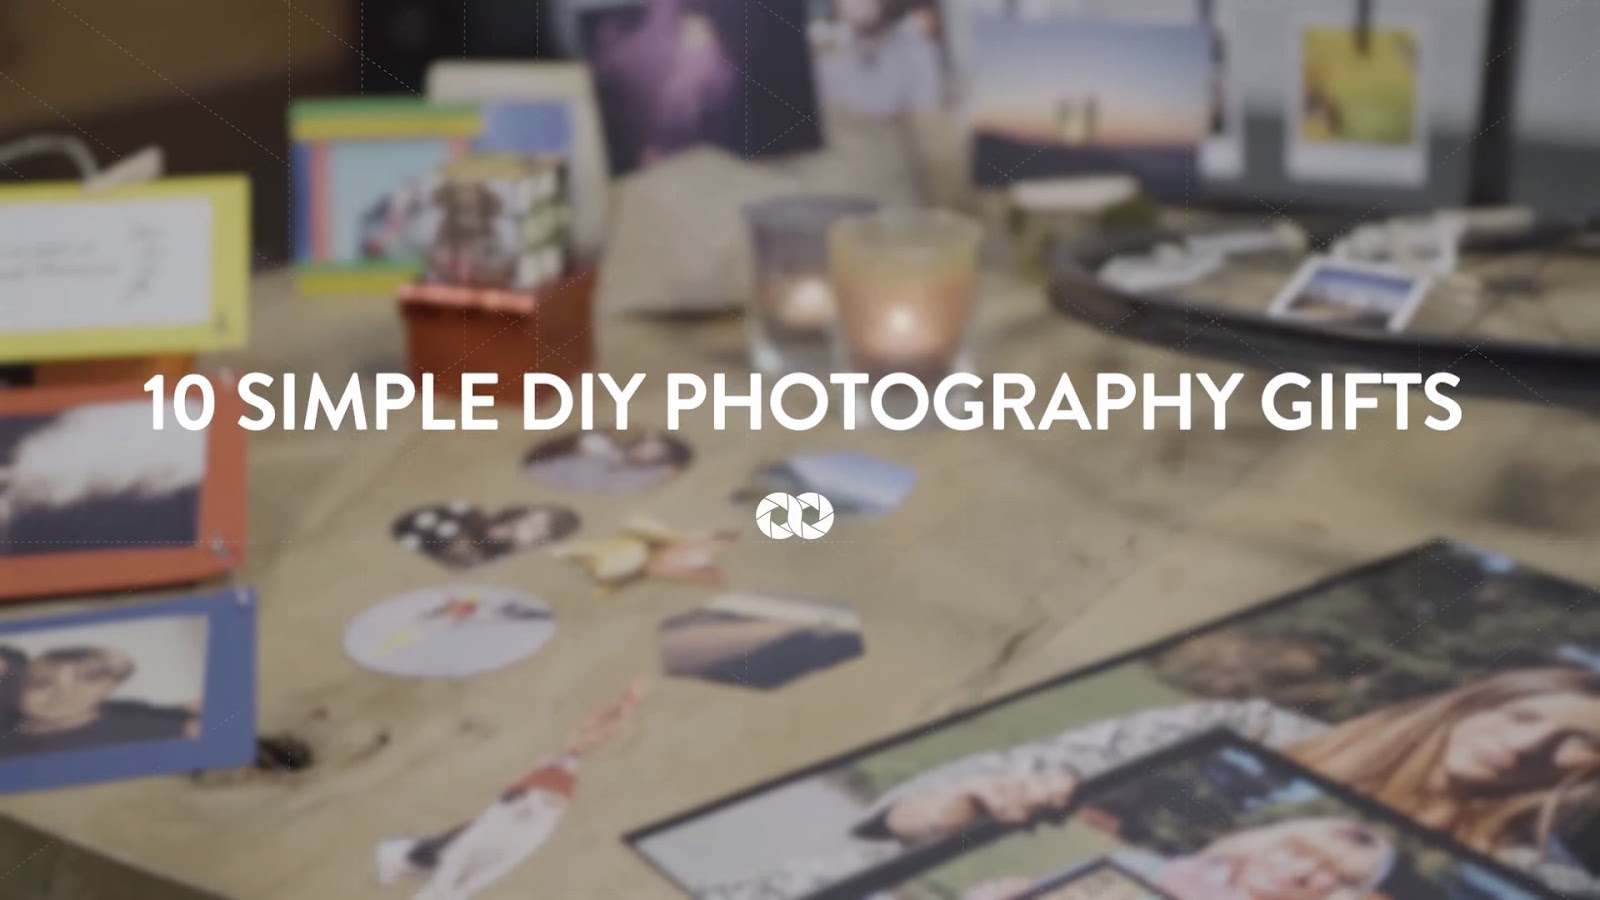 10 Simple DIY Photography Gifts (Perfect for Christmas)